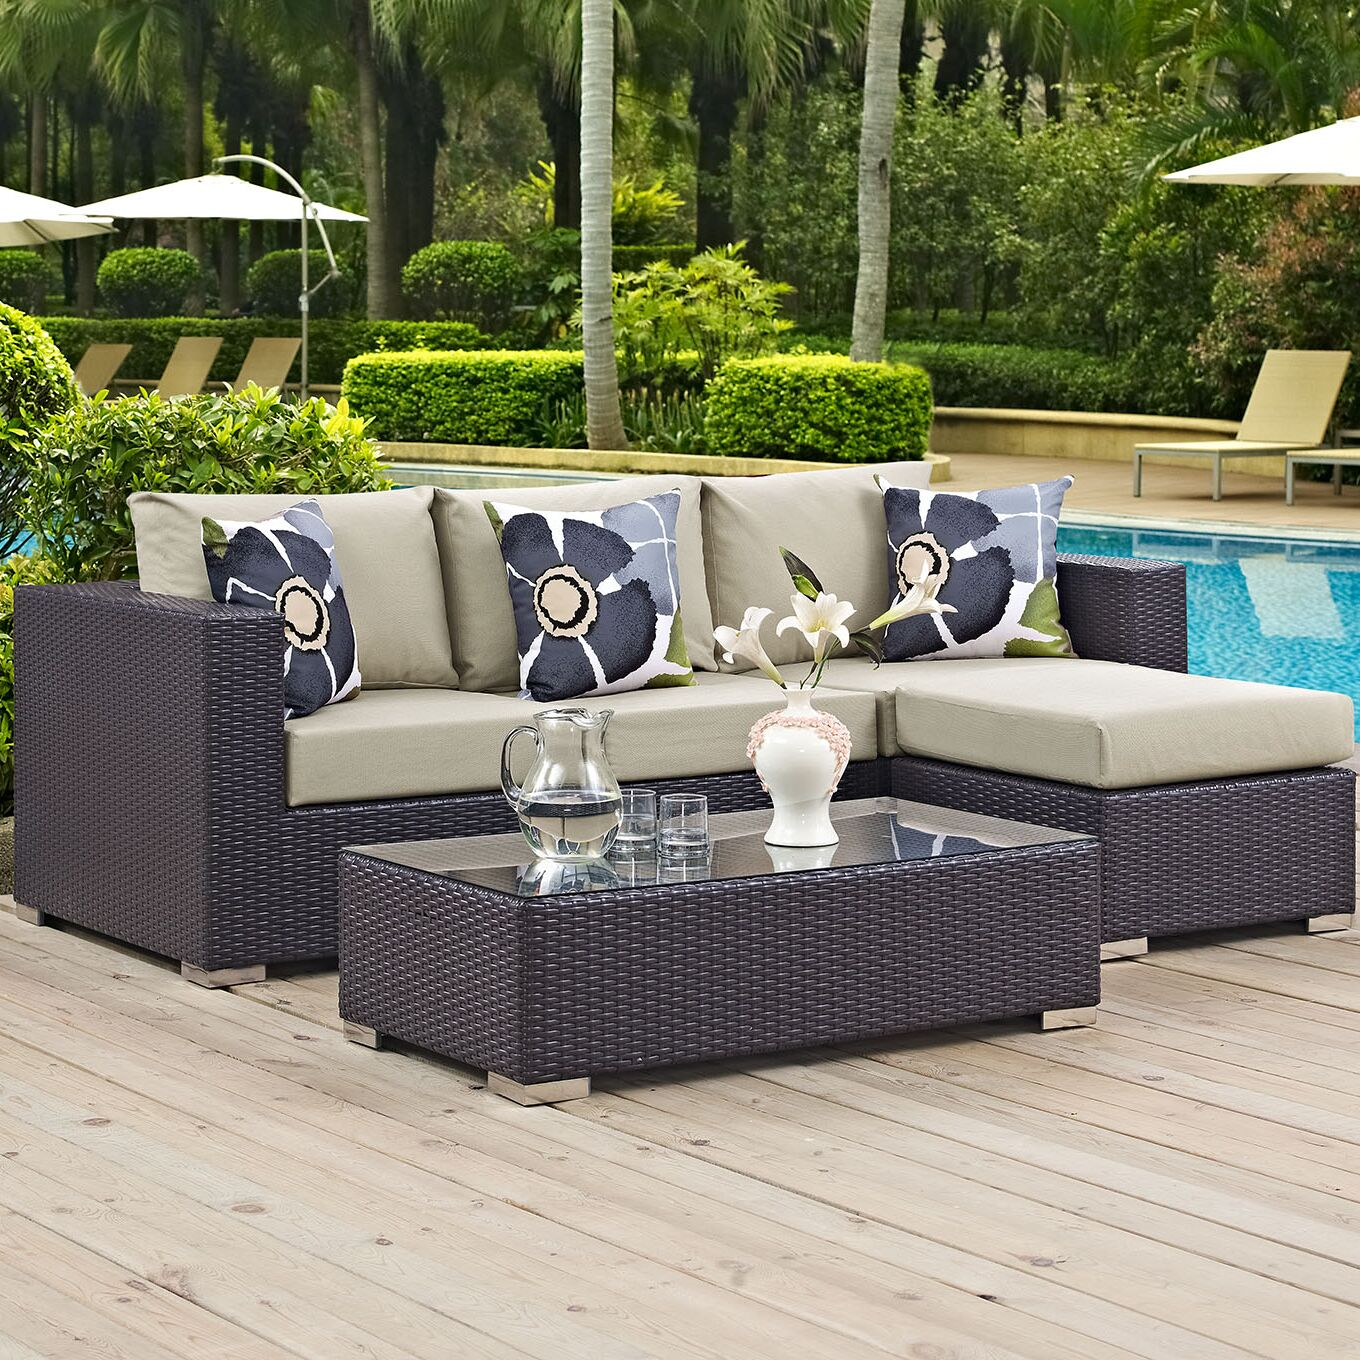 Ryele 3 Piece Rattan Sectional Set with Cushions Fabric: Beige